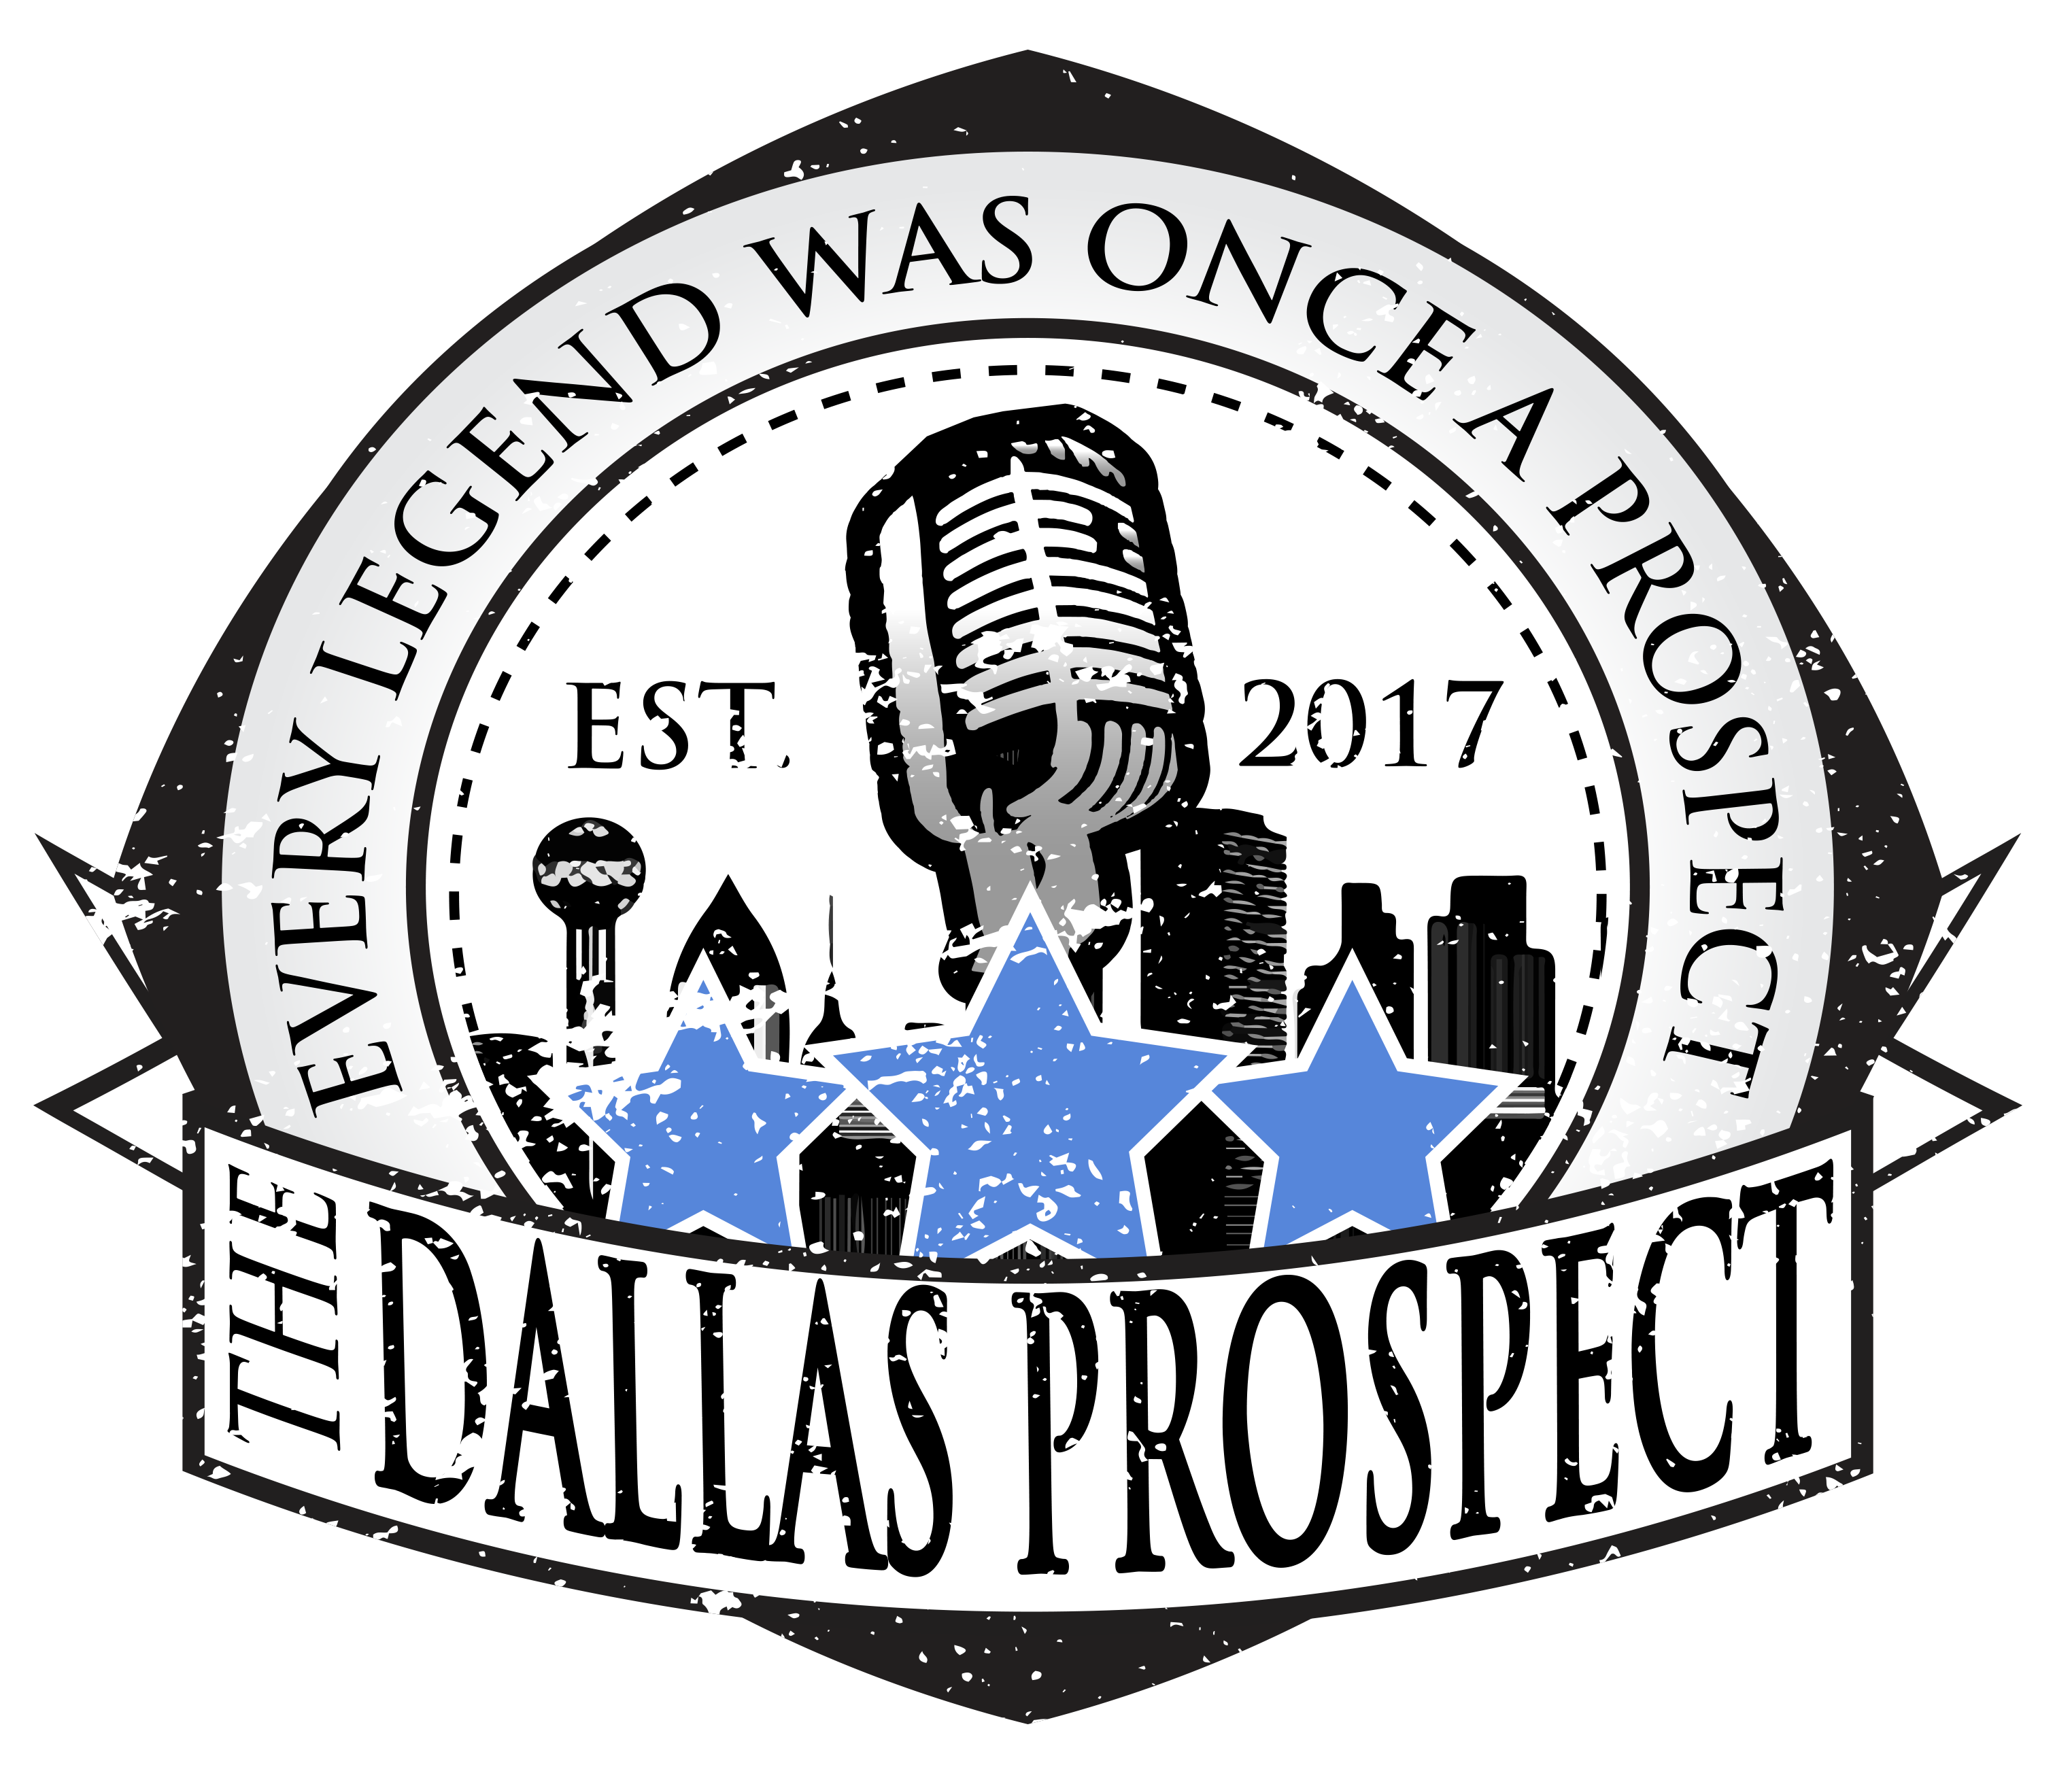 https://thedallasprospect.com